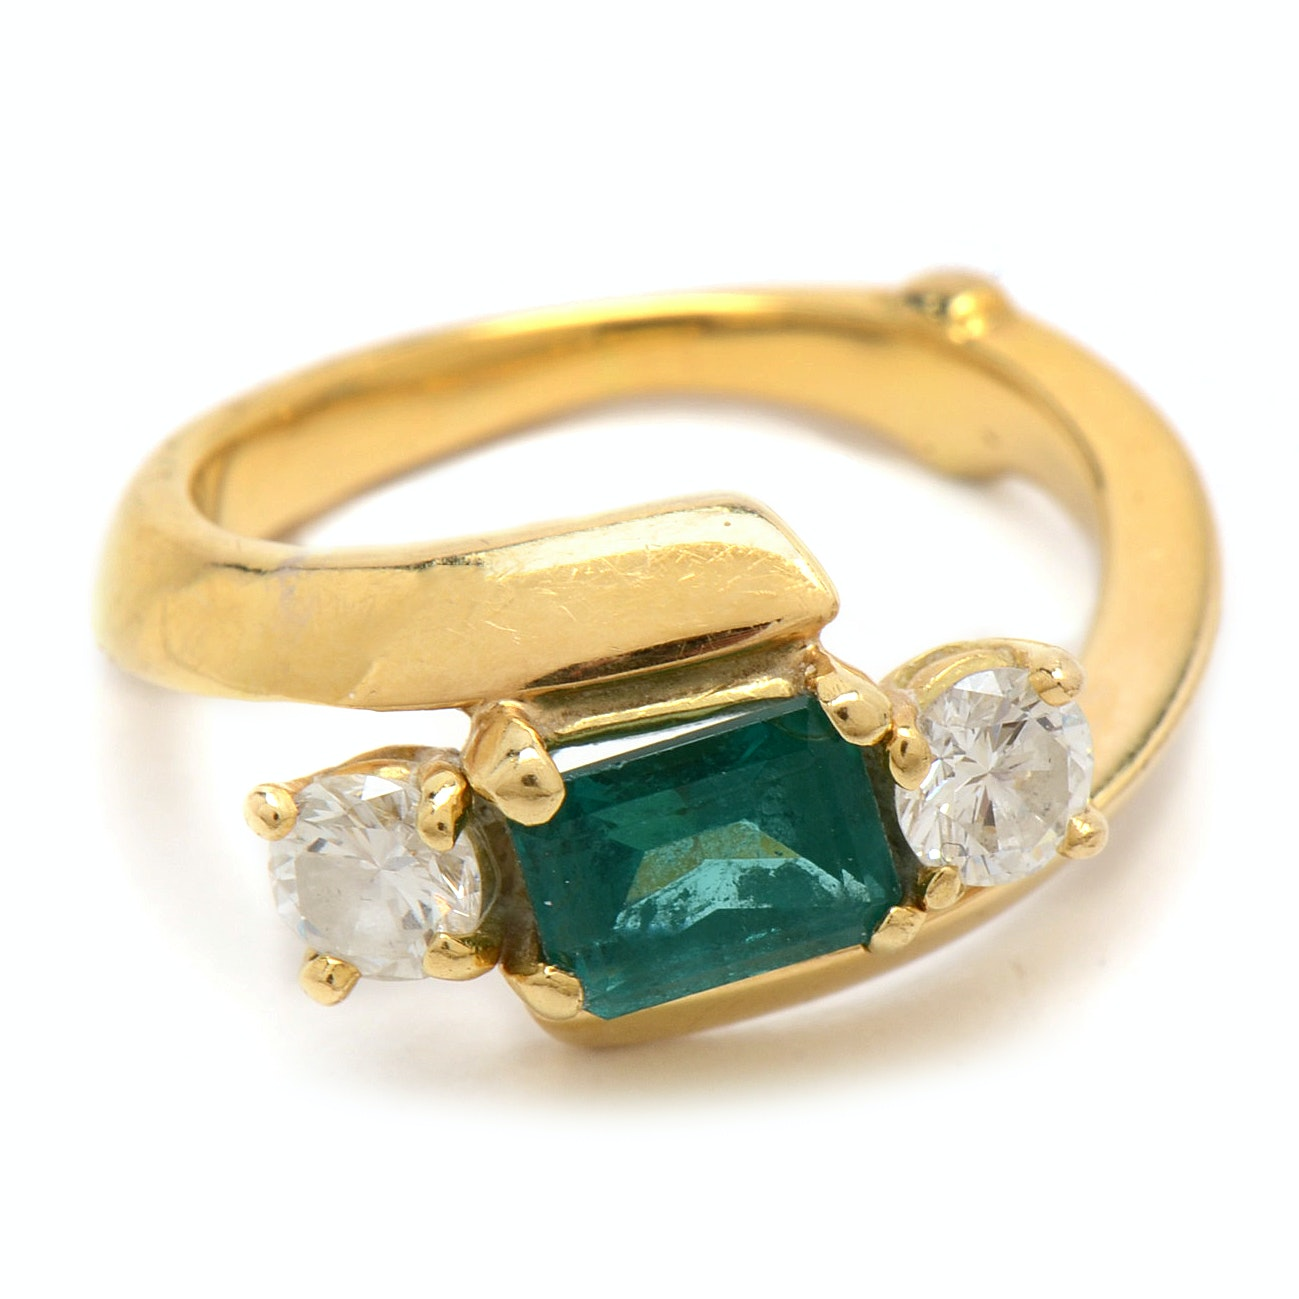 18K Yellow Gold 1.03 Ct Emerald and Diamond Ring